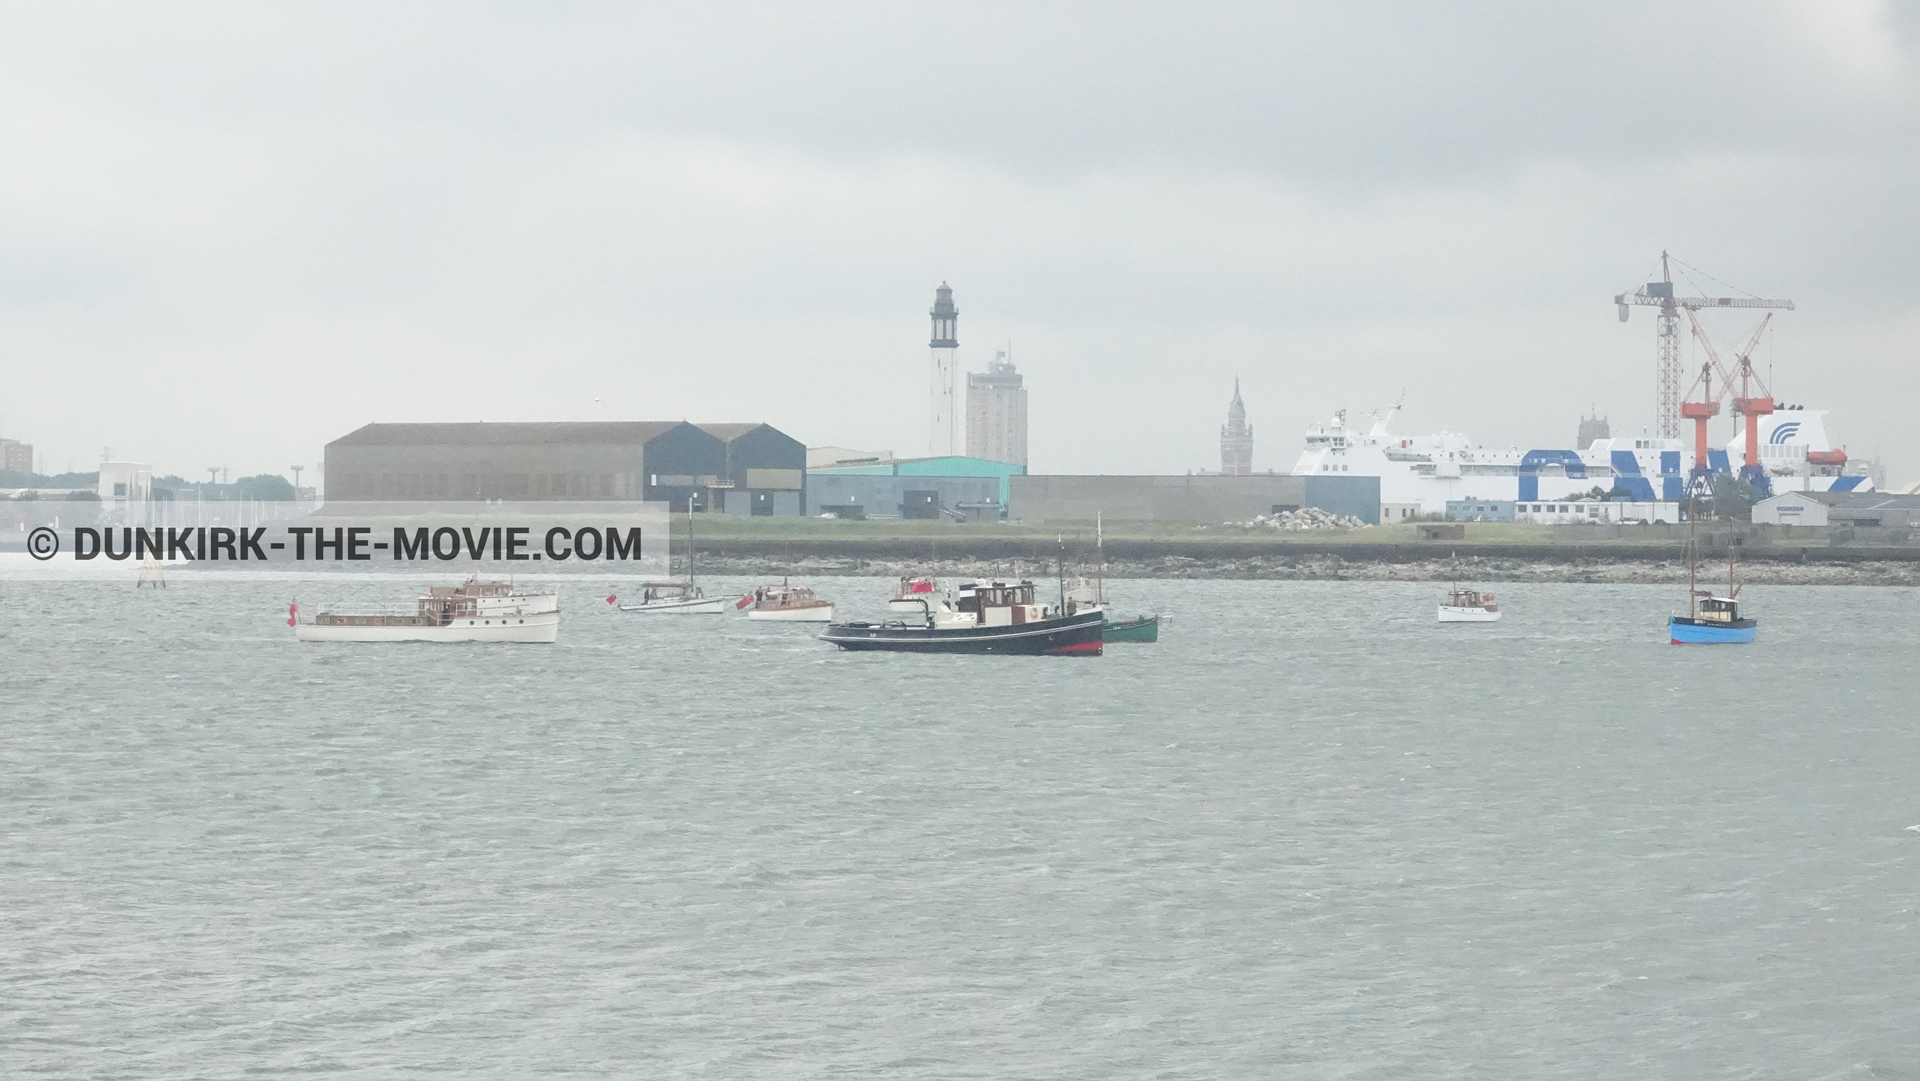 Picture with boat, Dunkirk lighthouse,  from behind the scene of the Dunkirk movie by Nolan